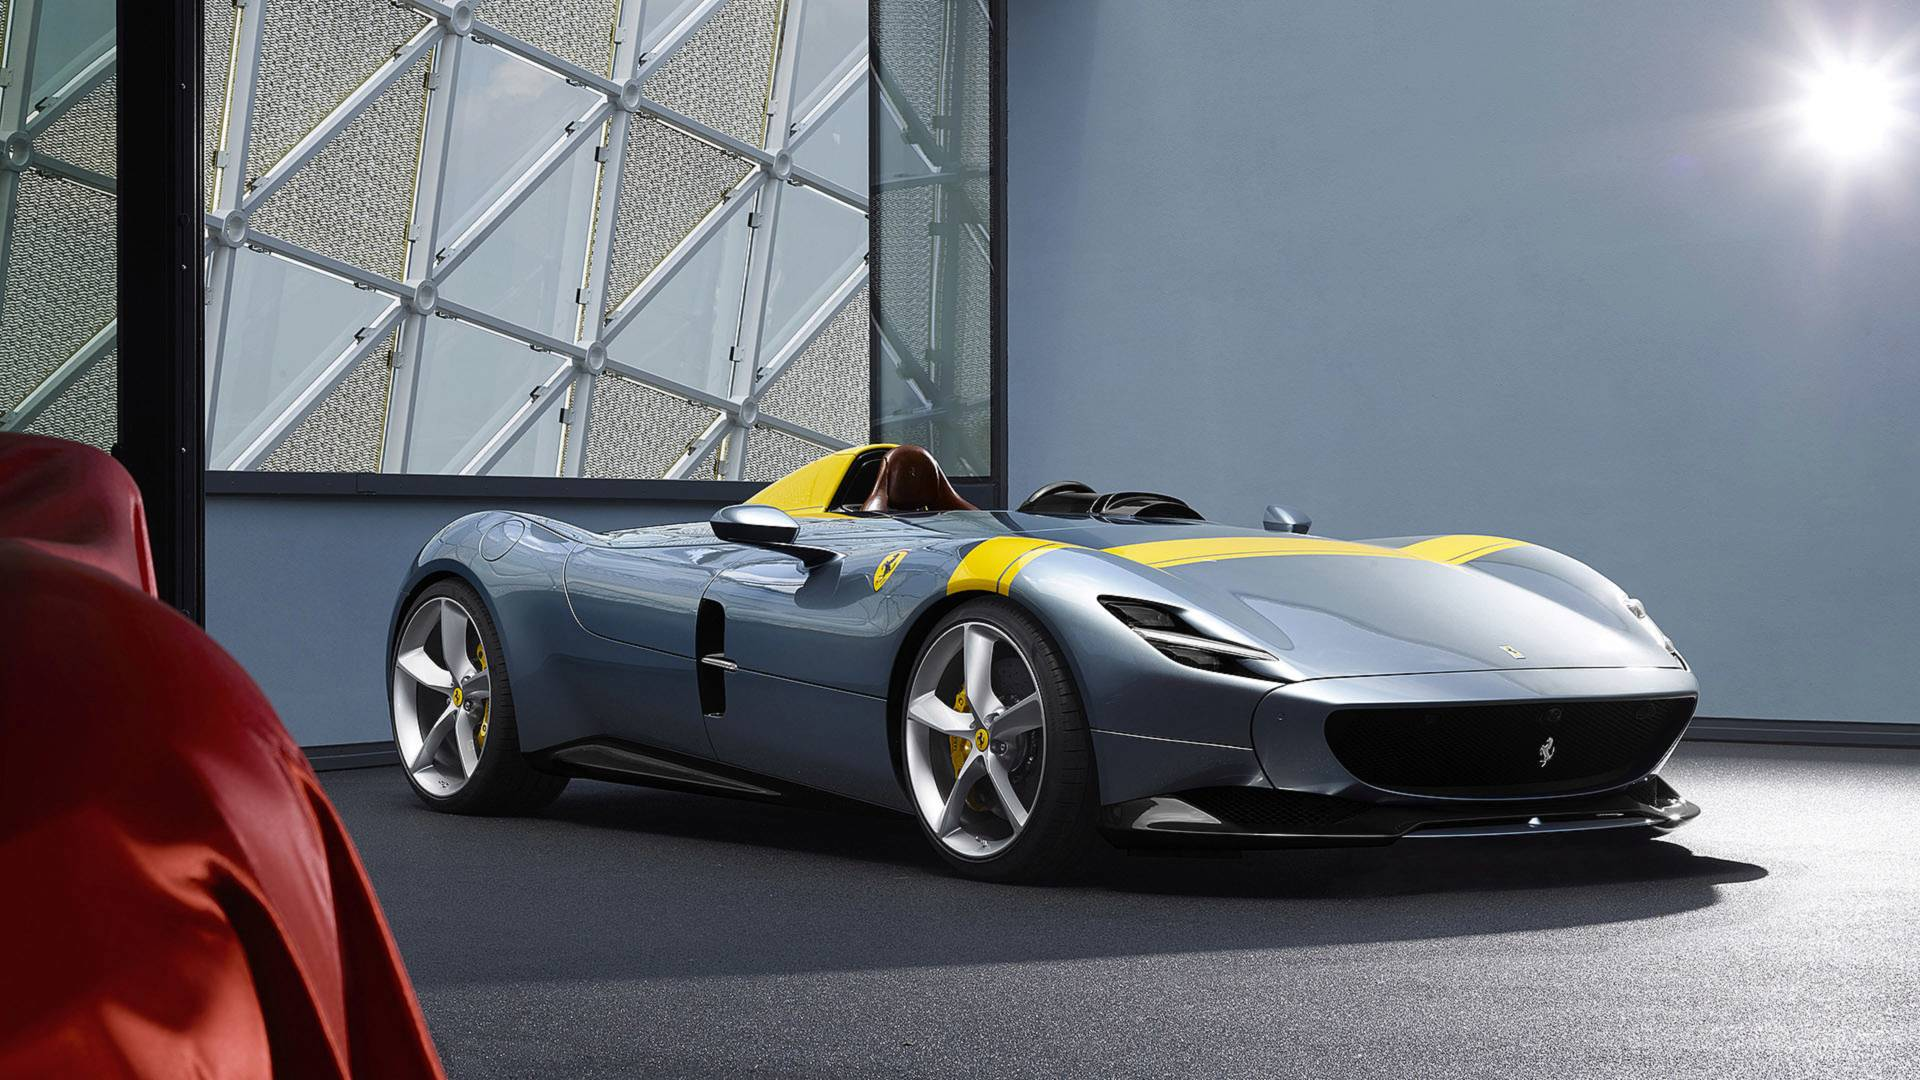 Ferrari Reveals Limited Edition Monza Sp1 And Sp2 Speedsters